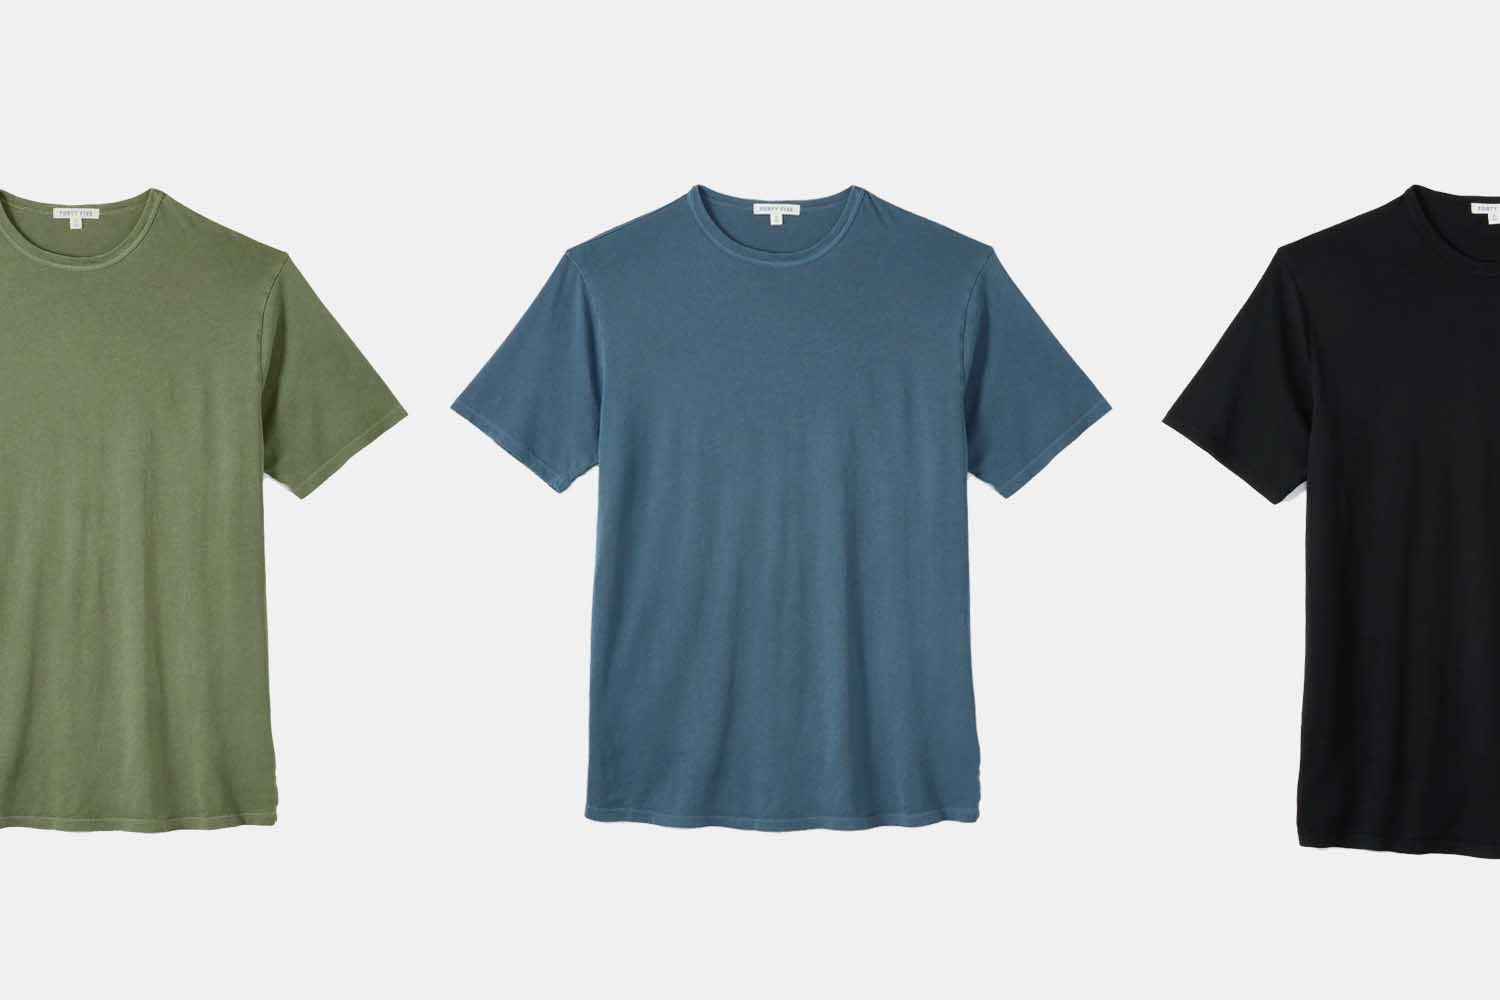 Huckberry Just Launched an In-House T-Shirt Brand